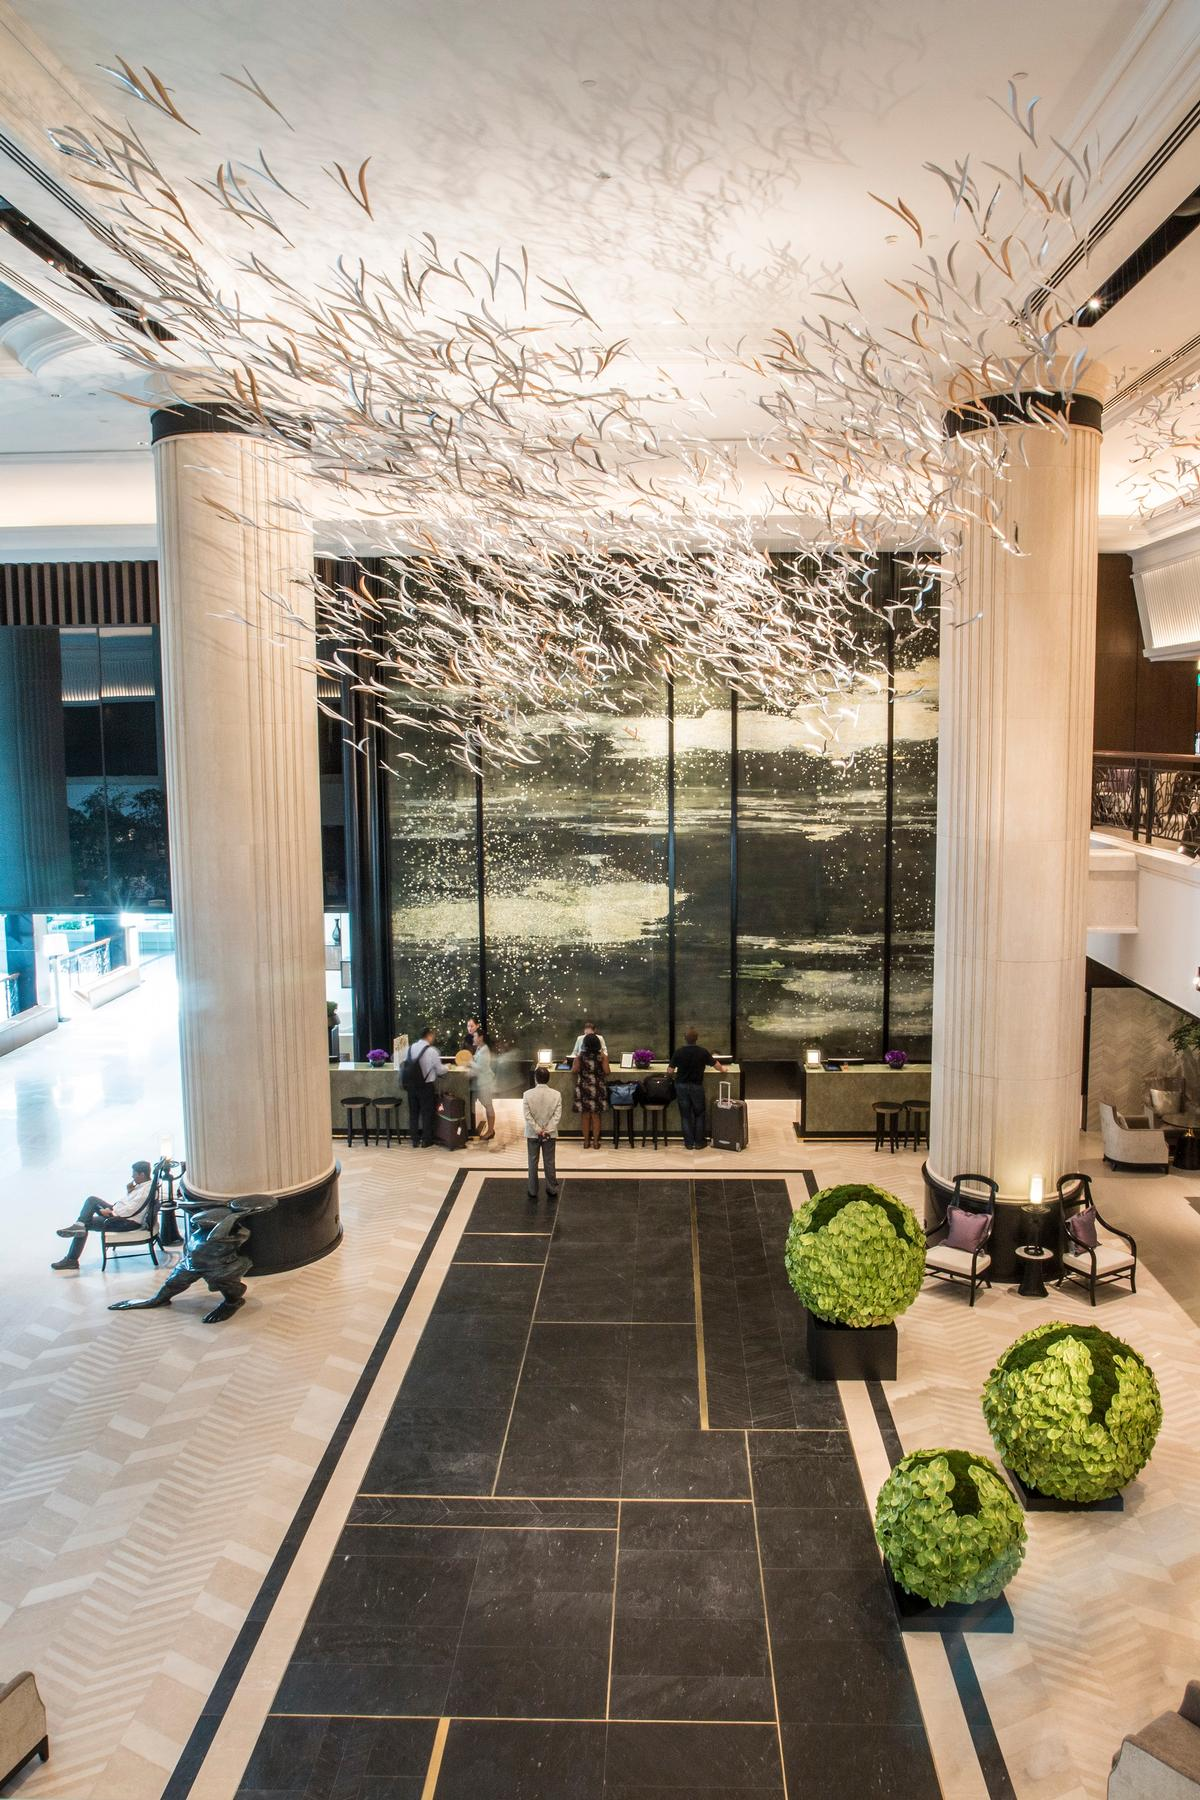 Renowned Japanese designer Hirotoshi Sawada has created a ceiling art installation formed of thousands of cascading stylised leaves / Shangri-La